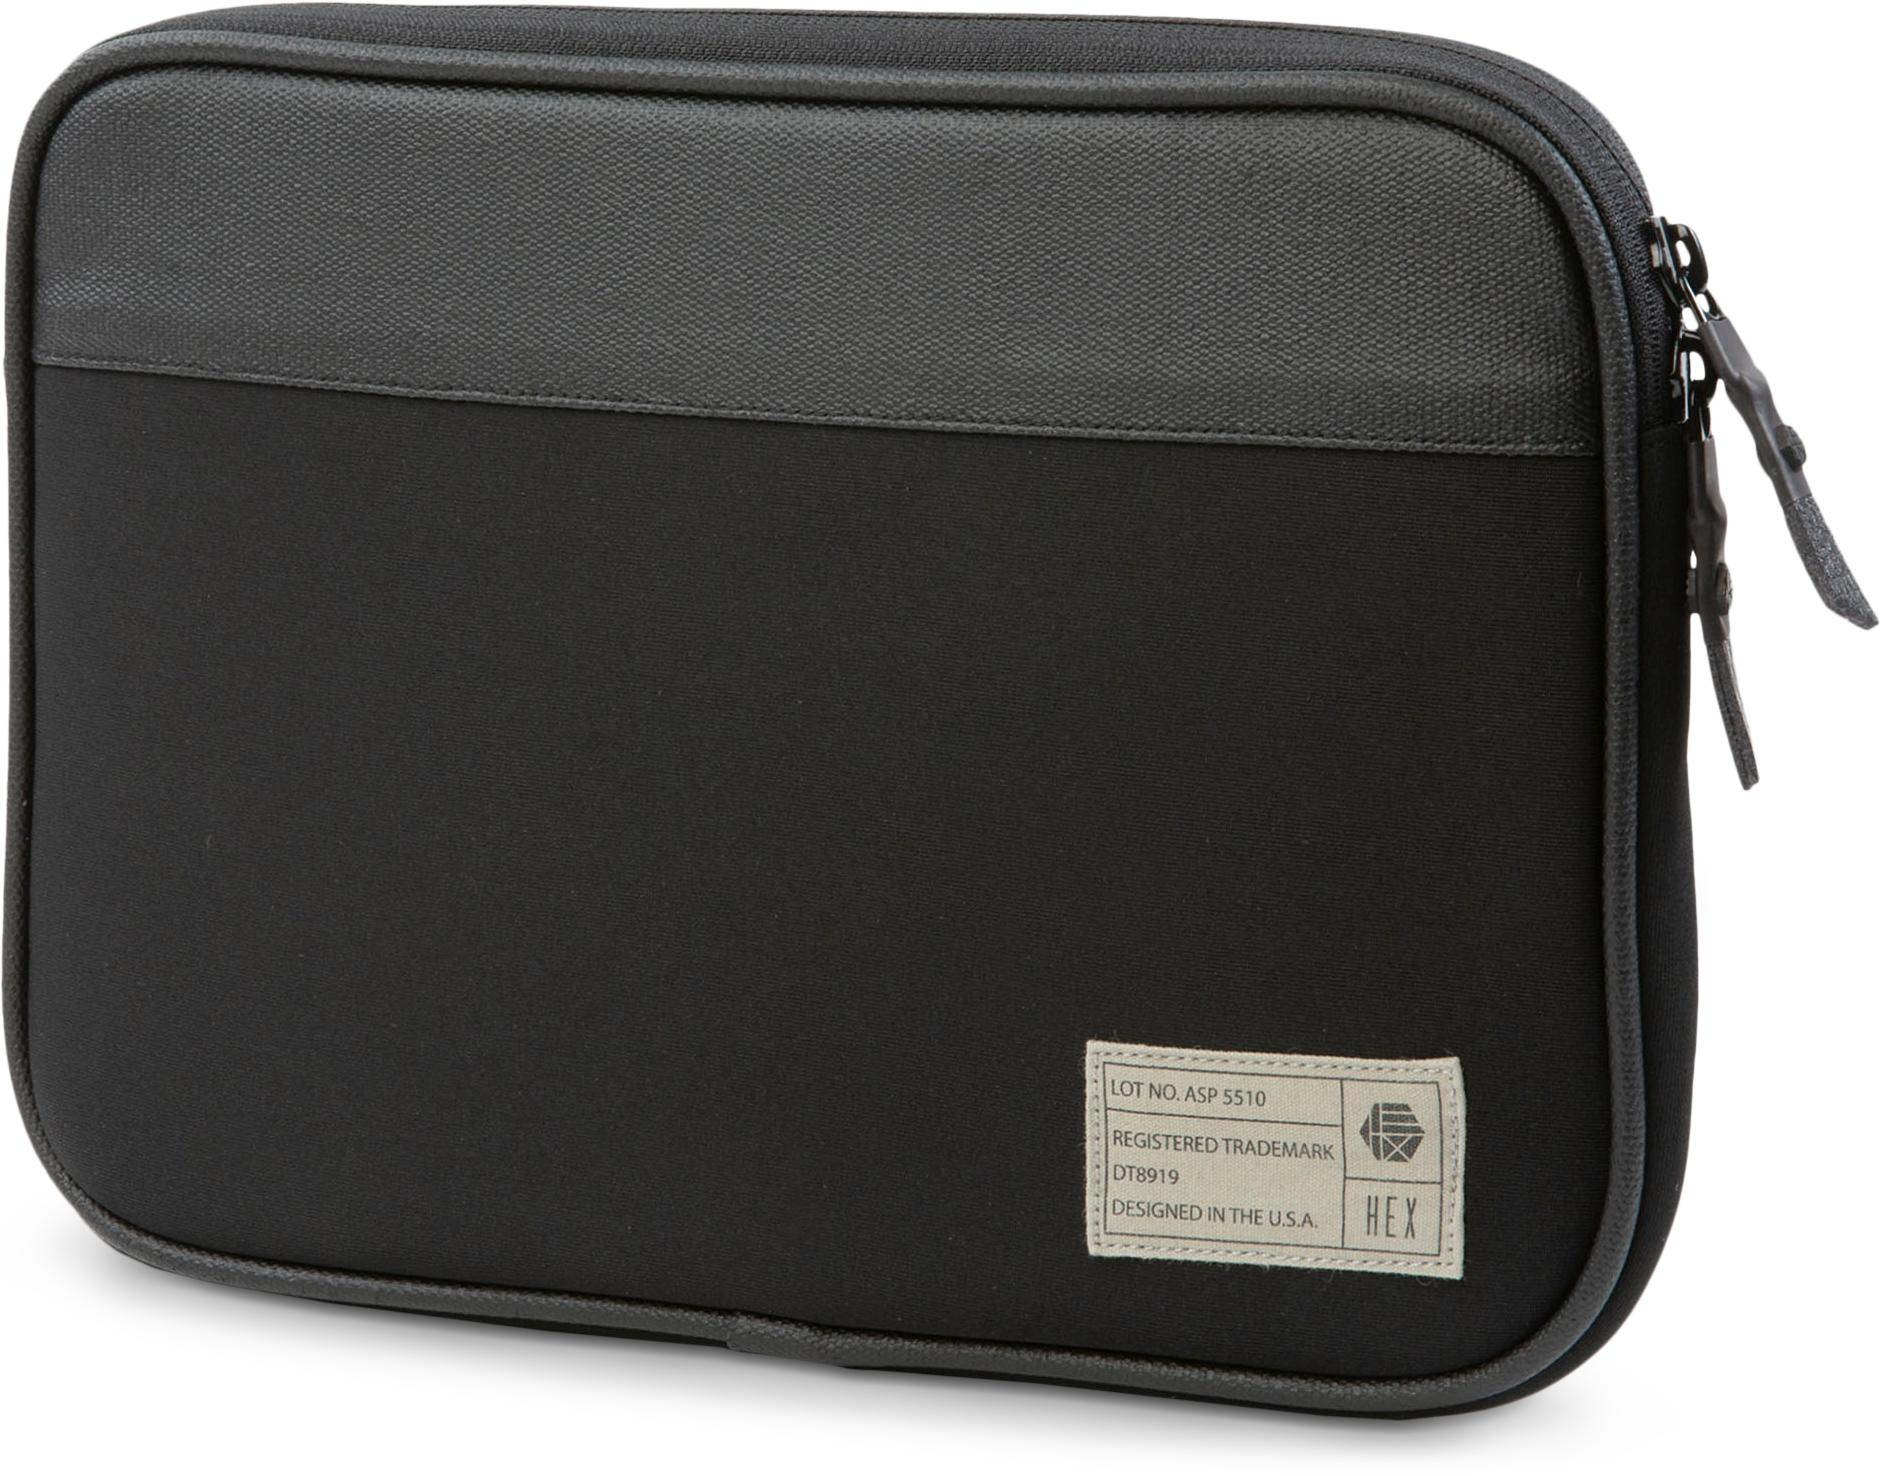 "HEX 10"" Mona Tablet Sleeve in Black"